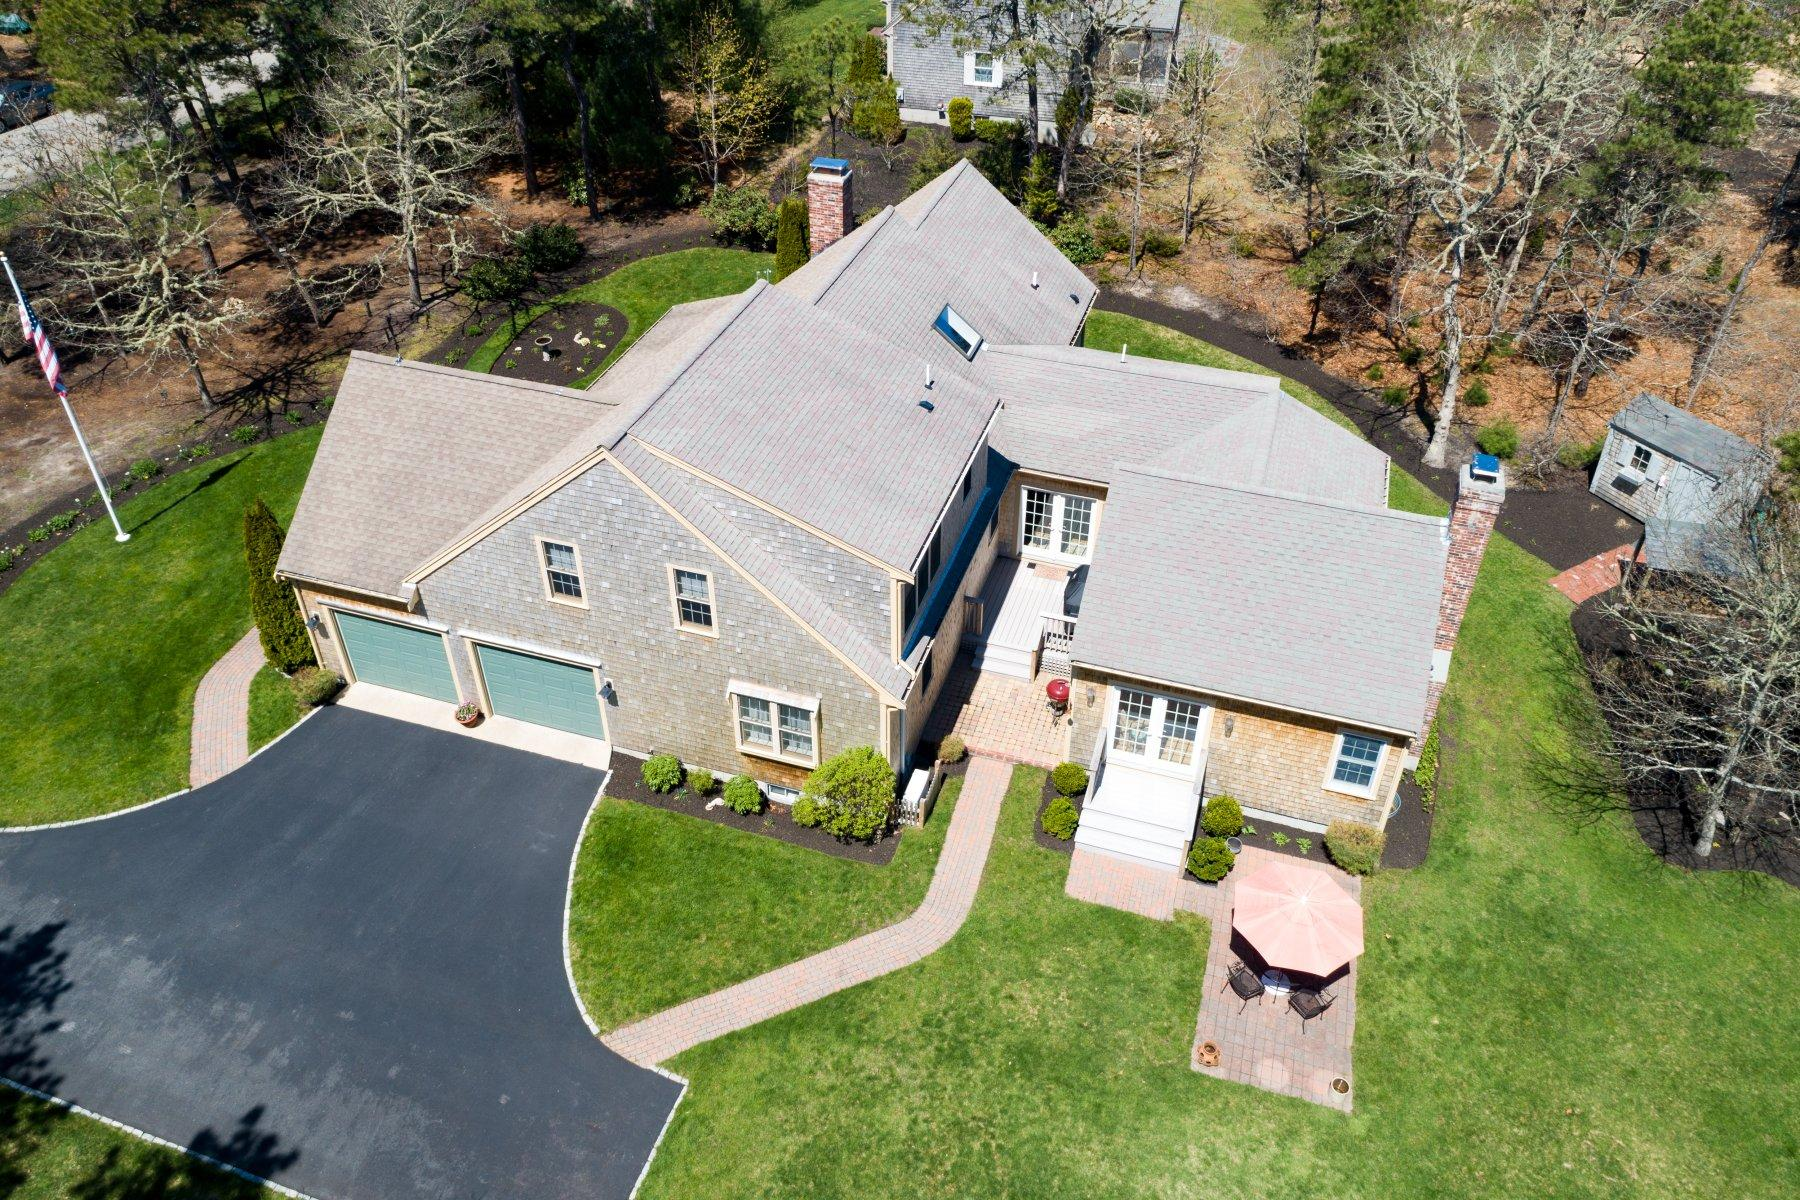 Single Family Home for Active at 43 Captain Bearse Lane, Harwich, MA 43 Captain Bearse Lane Harwich, Massachusetts 02645 United States